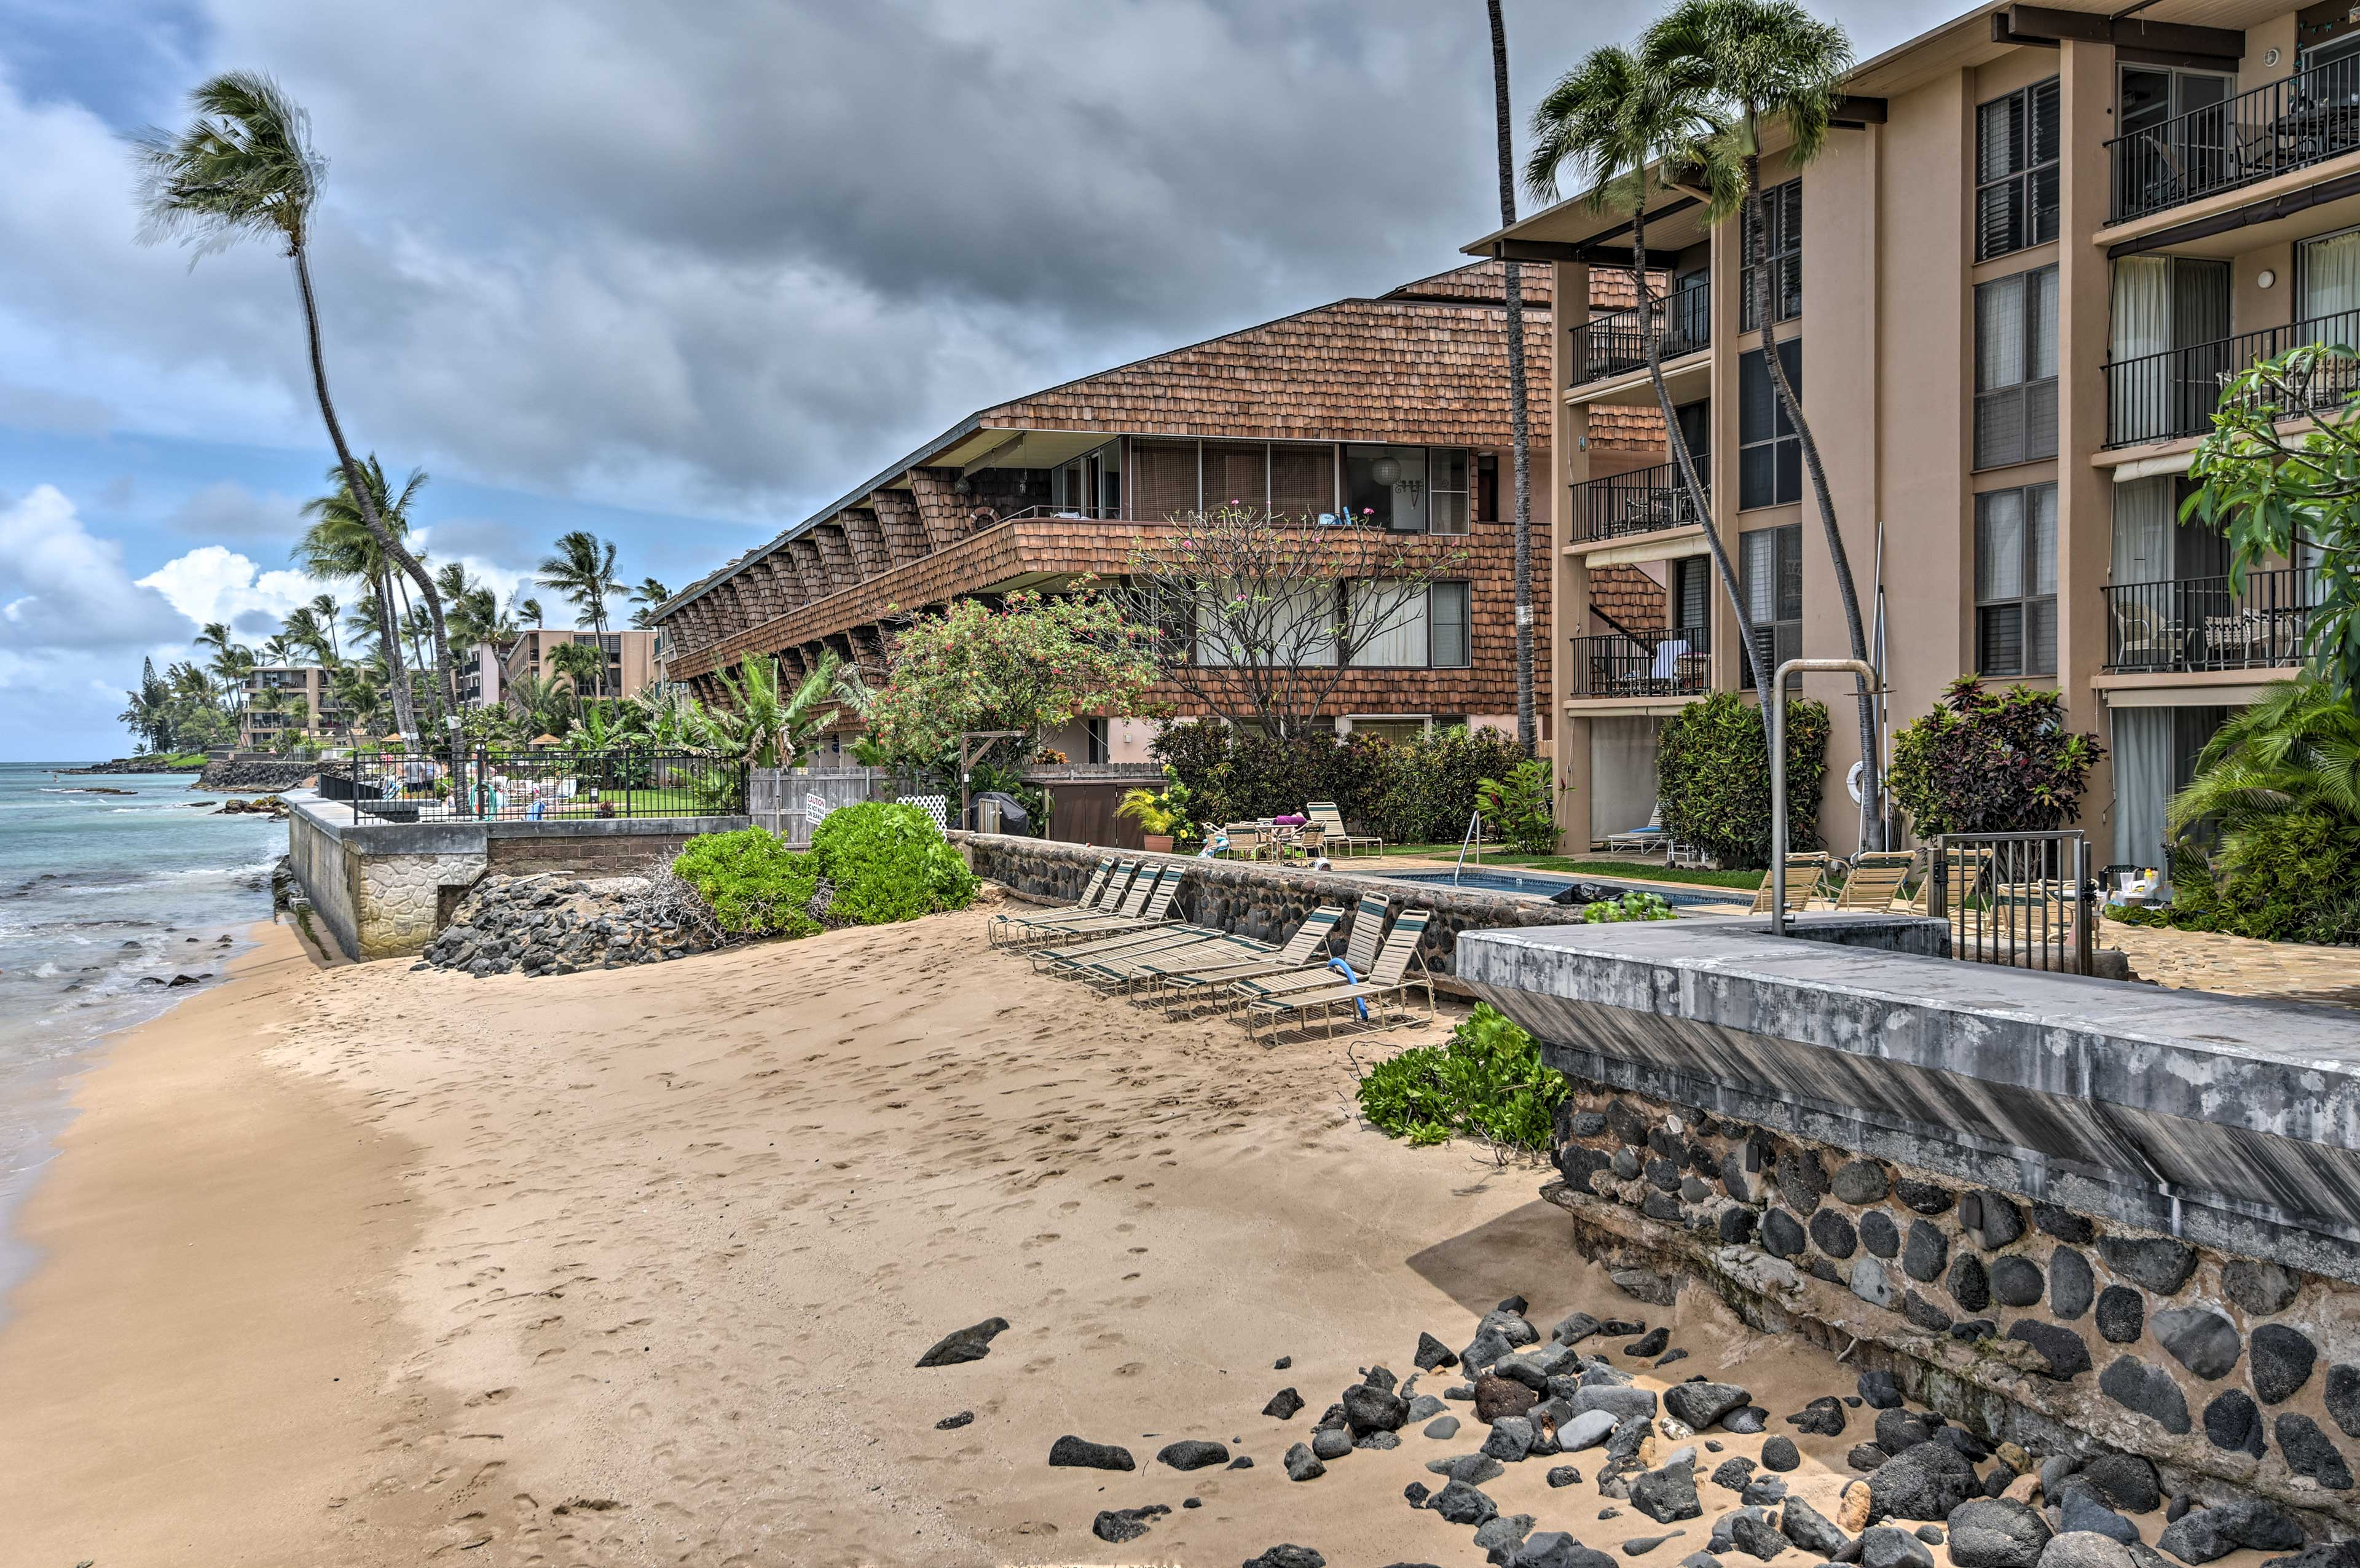 Stroll along the beach, steps from your vacation rental condo.